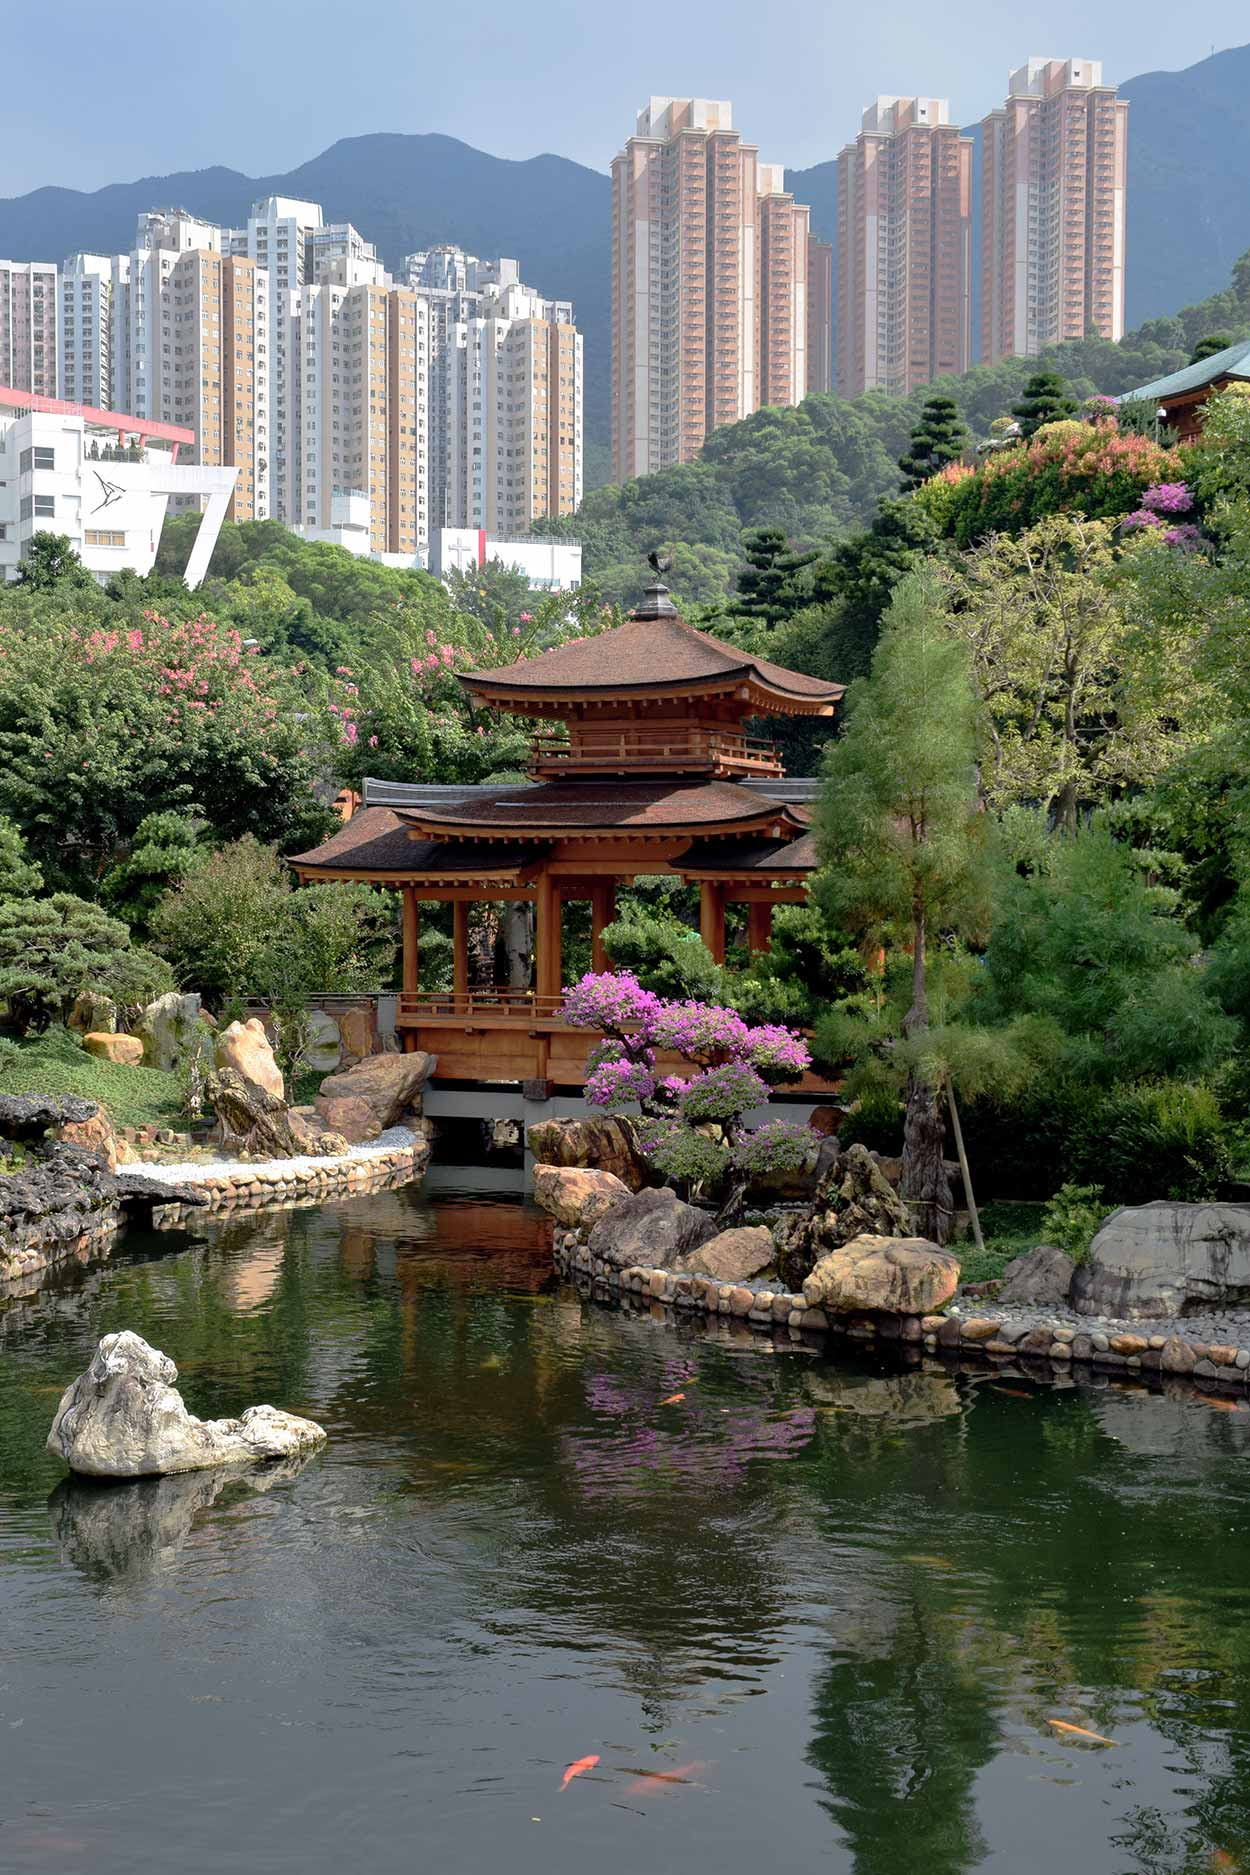 The view from the Lunar Reflection Terrace over the Blue Pond to the Pavilion Bridge, Nan Lian Garden, Hong Kong, China